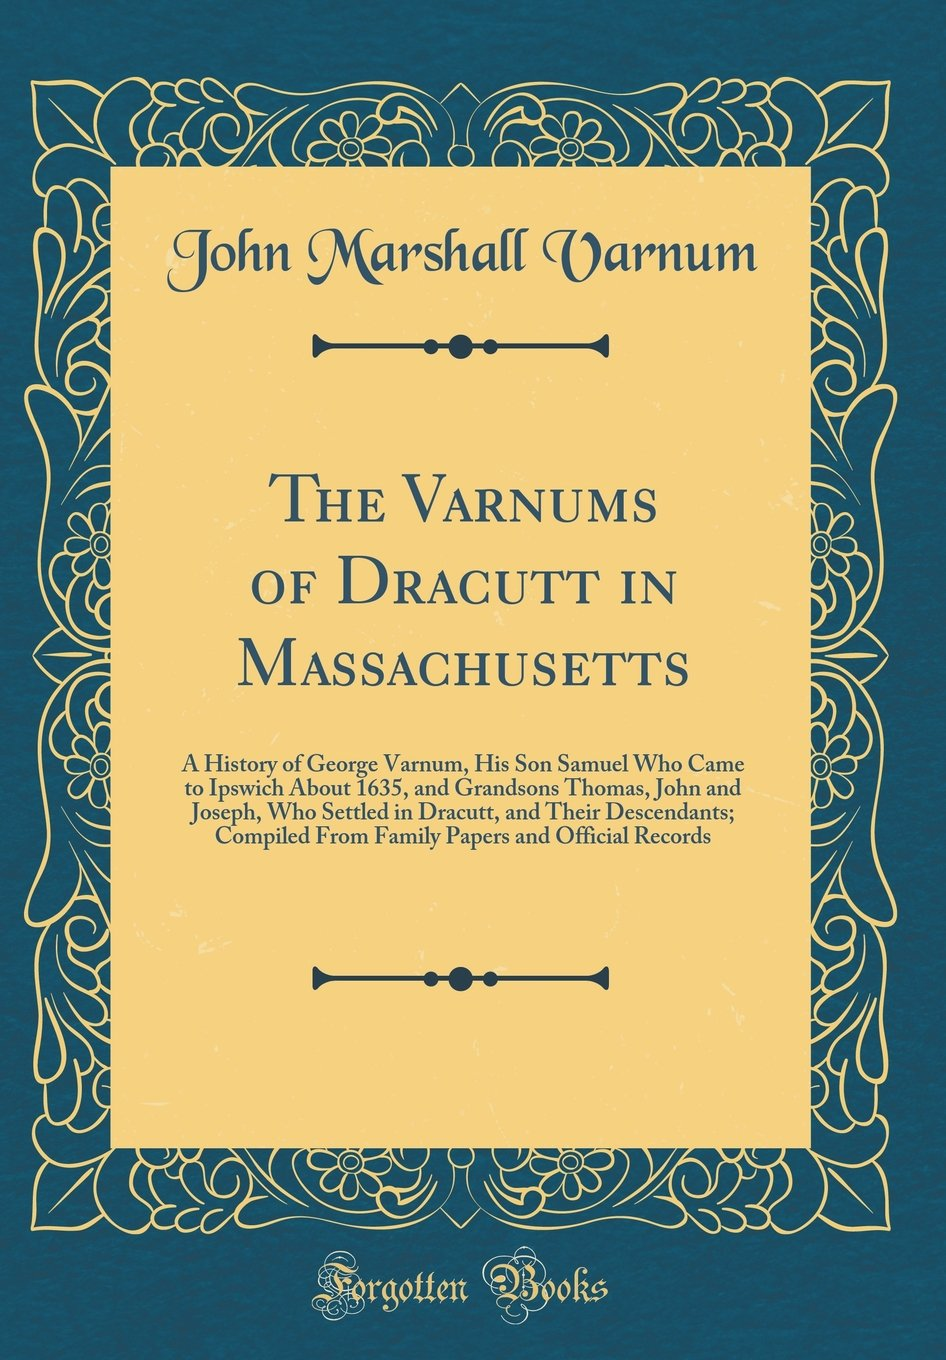 The Varnums of Dracutt in Massachusetts: A History of George Varnum, His Son Samuel Who Came to Ipswich About 1635, and Grandsons Thomas, John and ... From Family Papers and Official Records ePub fb2 book